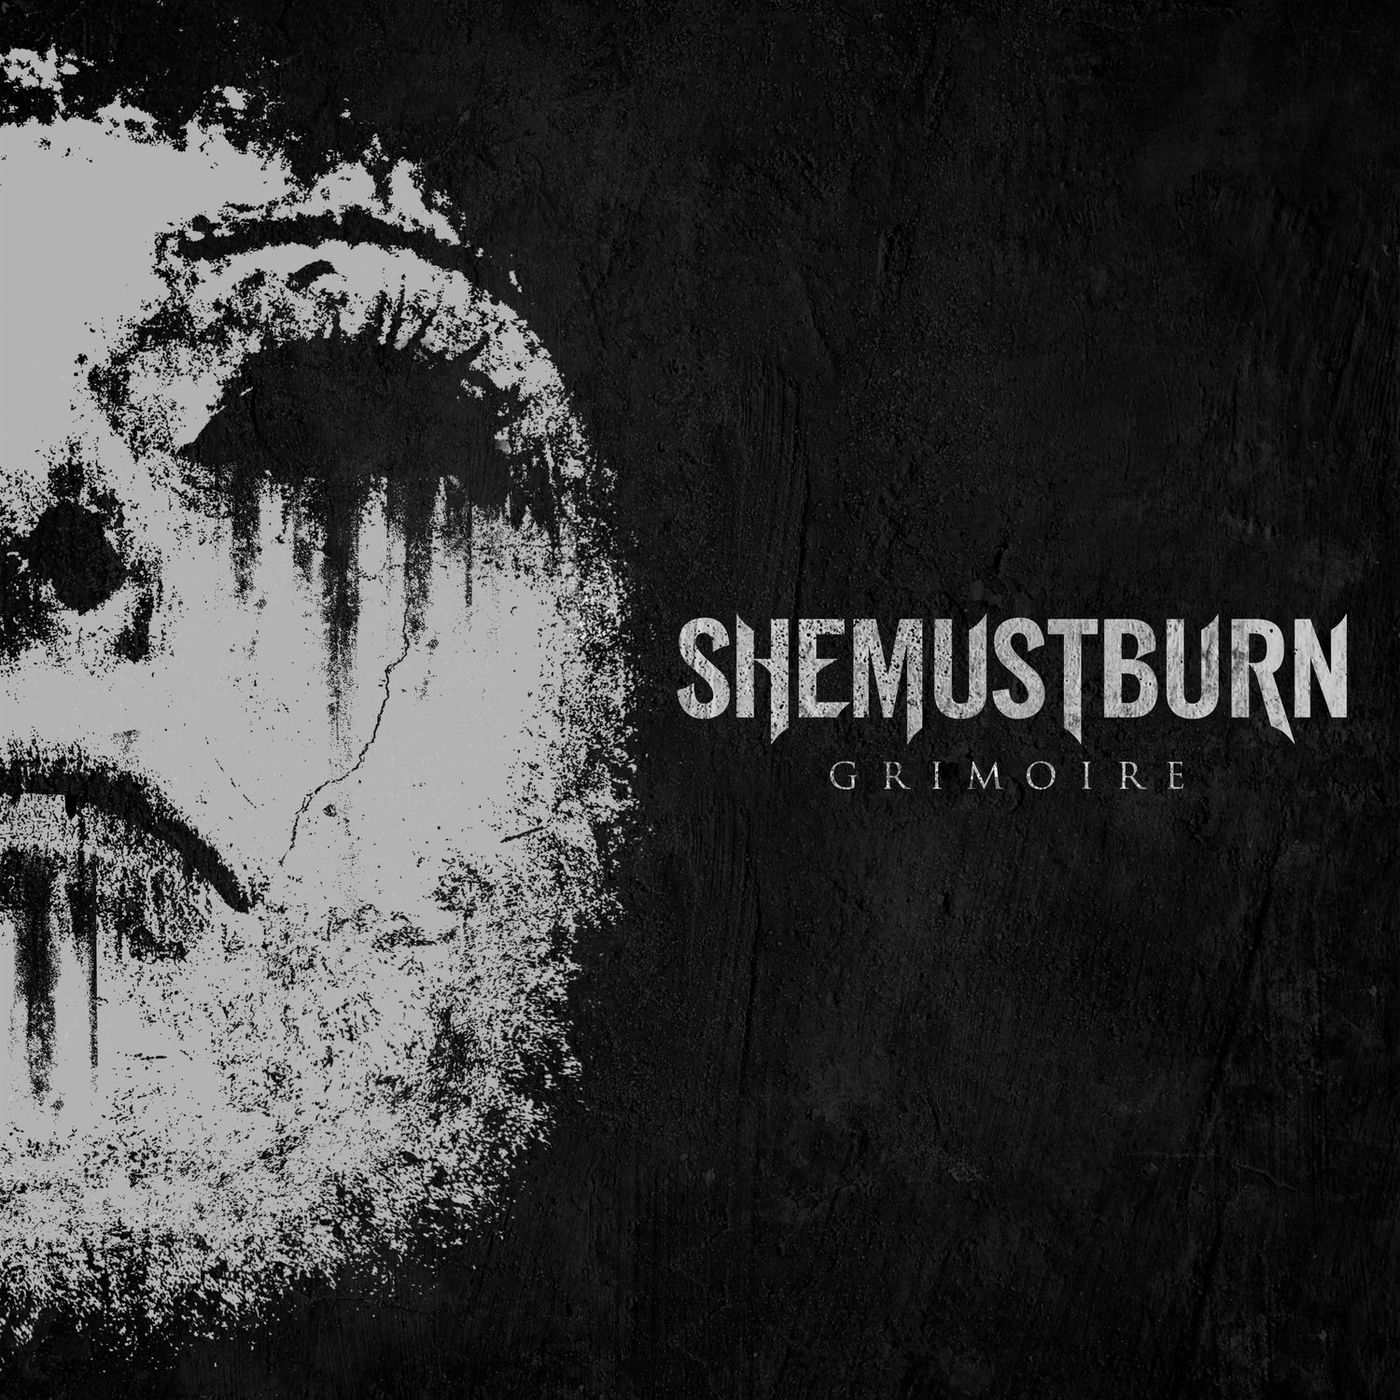 She Must Burn - Grimoire (2017)